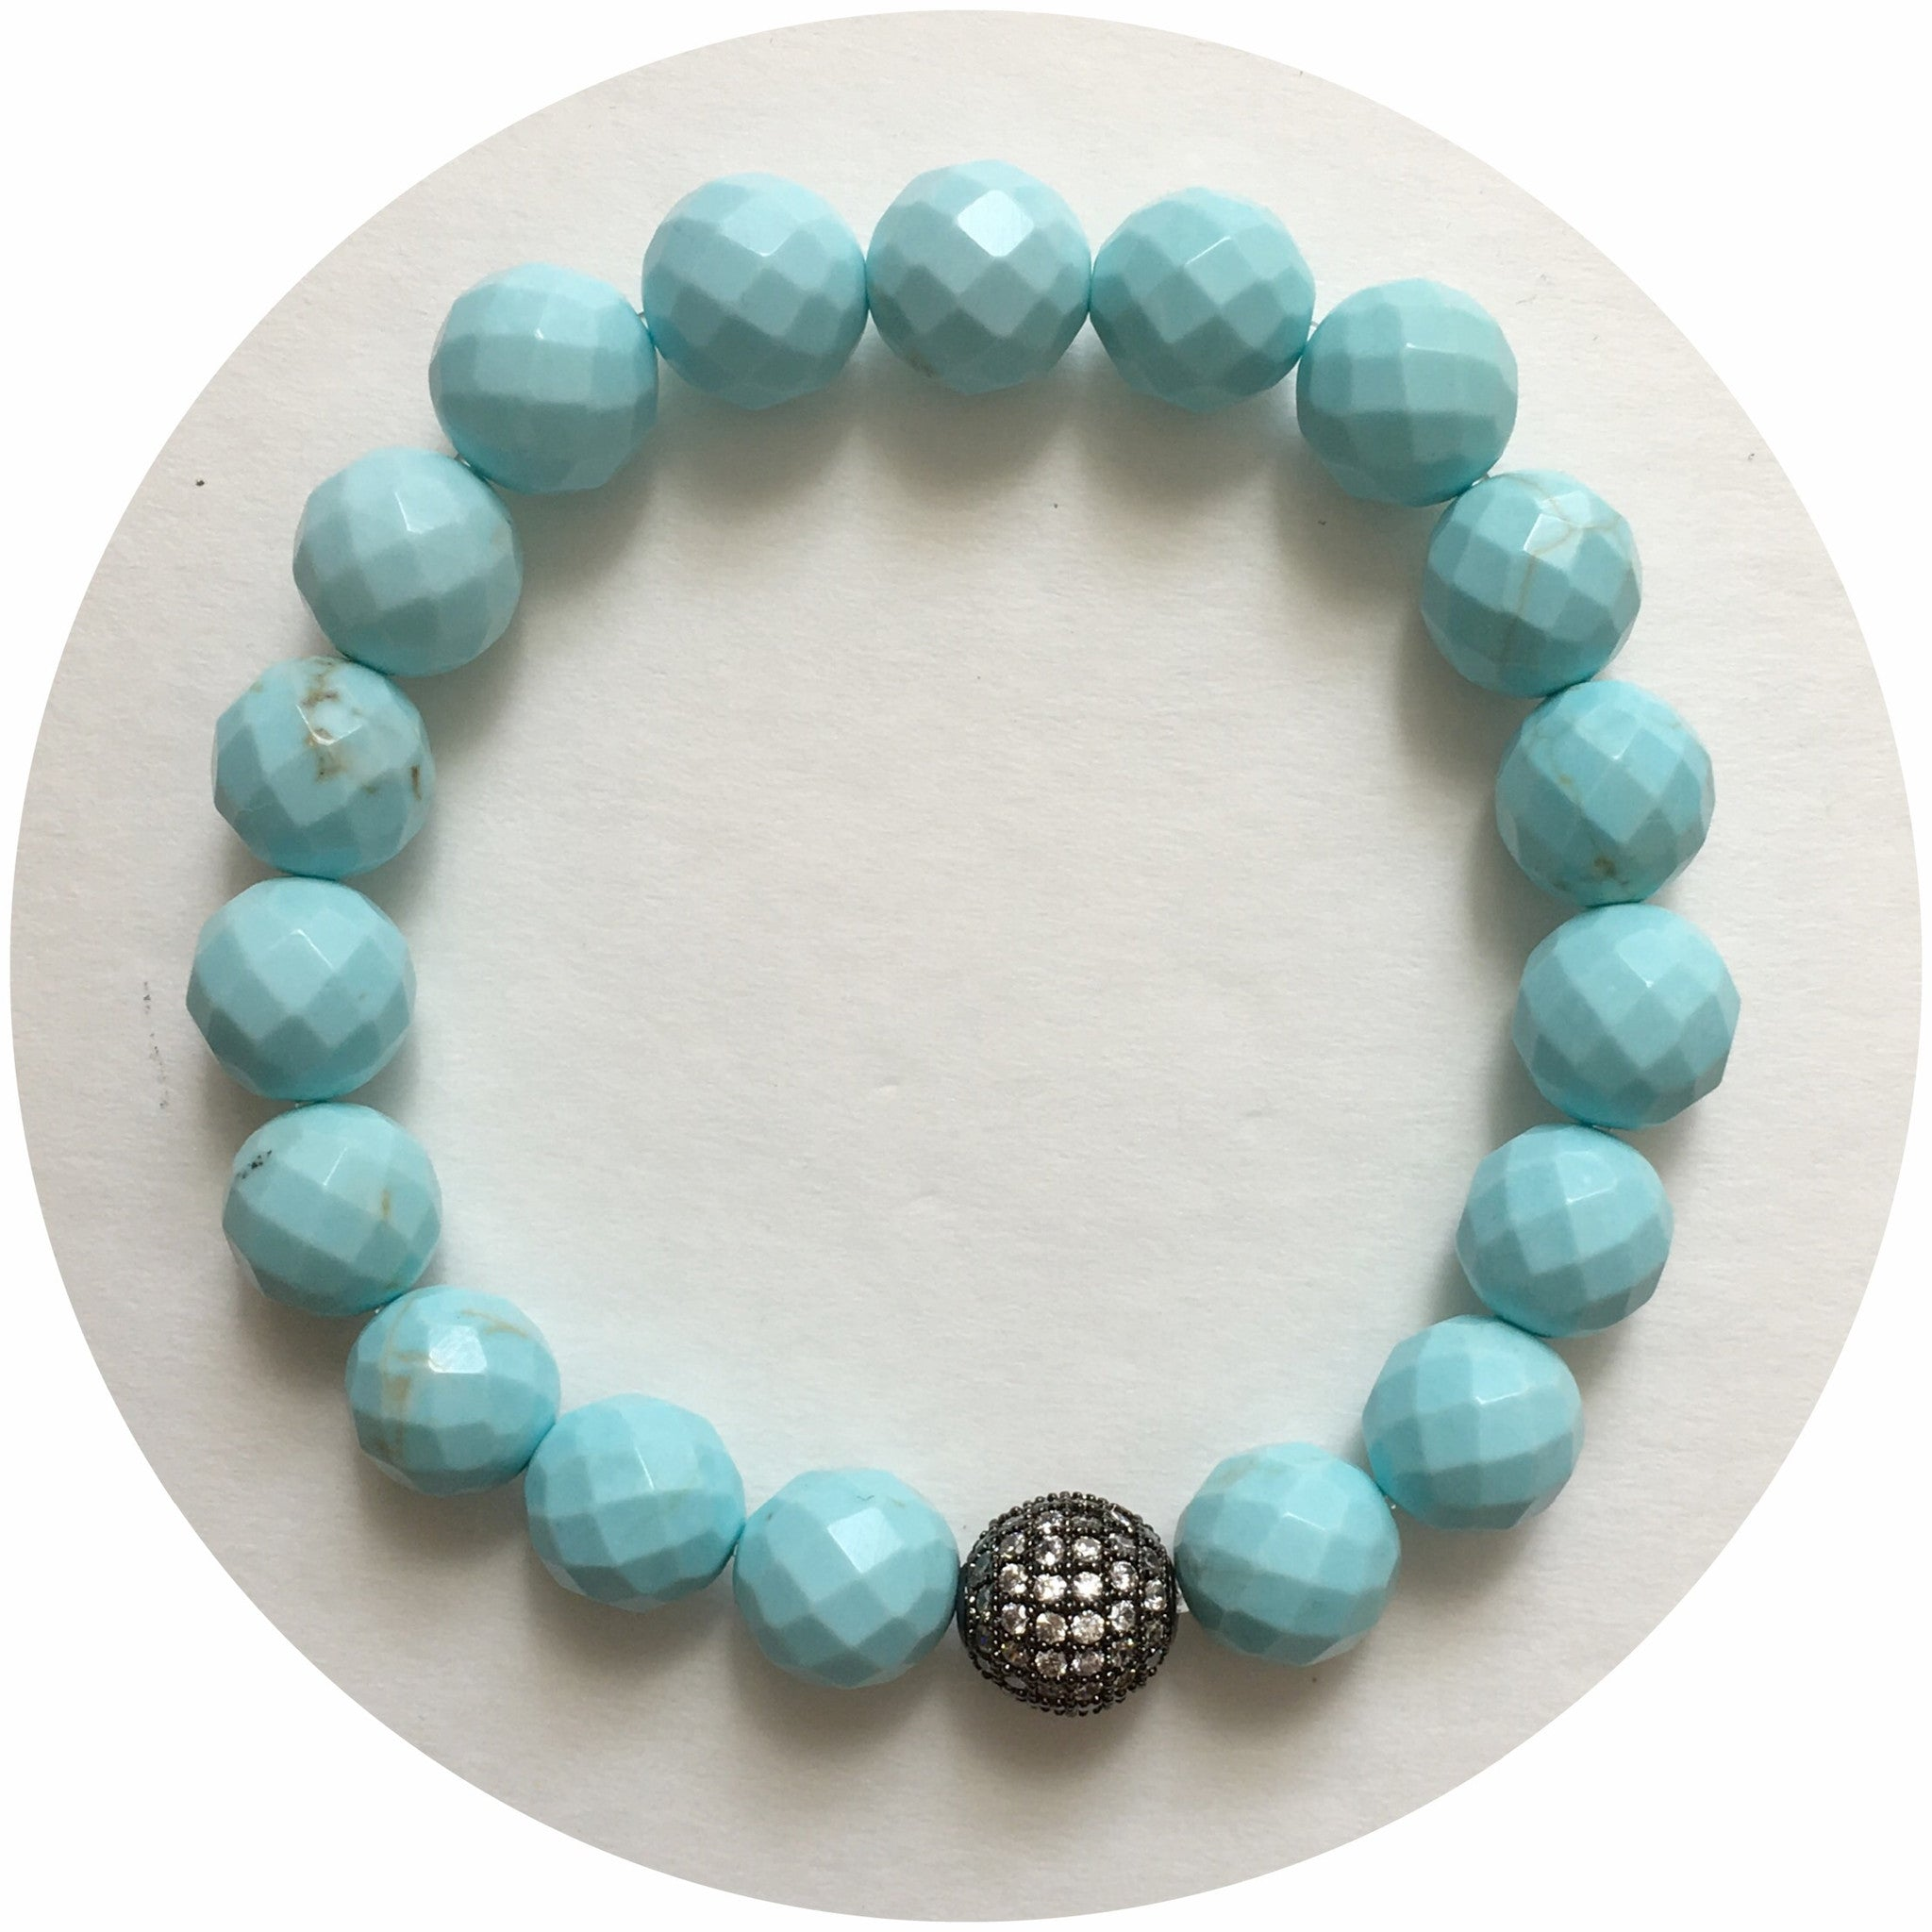 Light Turquoise Magnesite with CZ Micro Pavé Gunmetal Accent